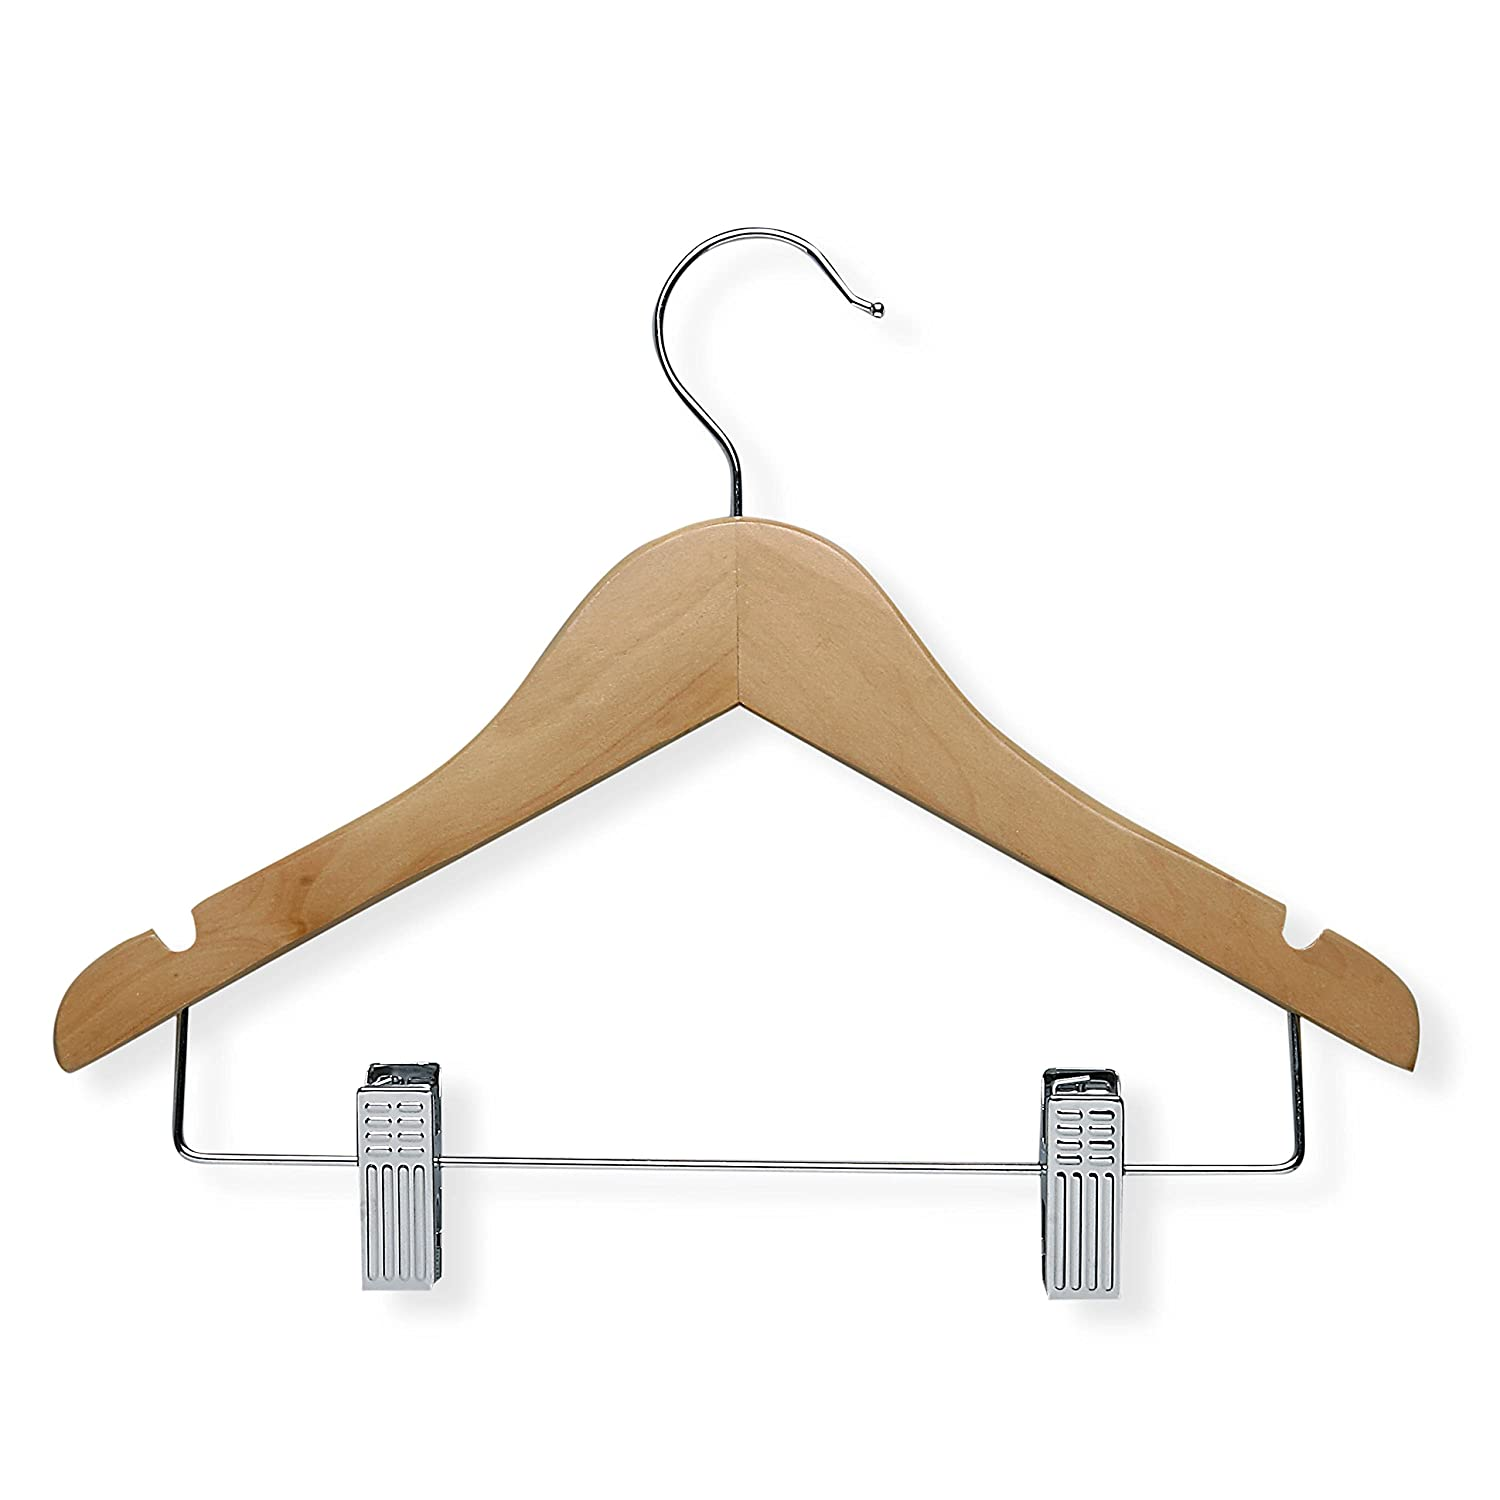 Honey-Can-Do HNG-01224 Kid's Wooden Shirt Hanger with Dress Notches, Maple, 5-Pack